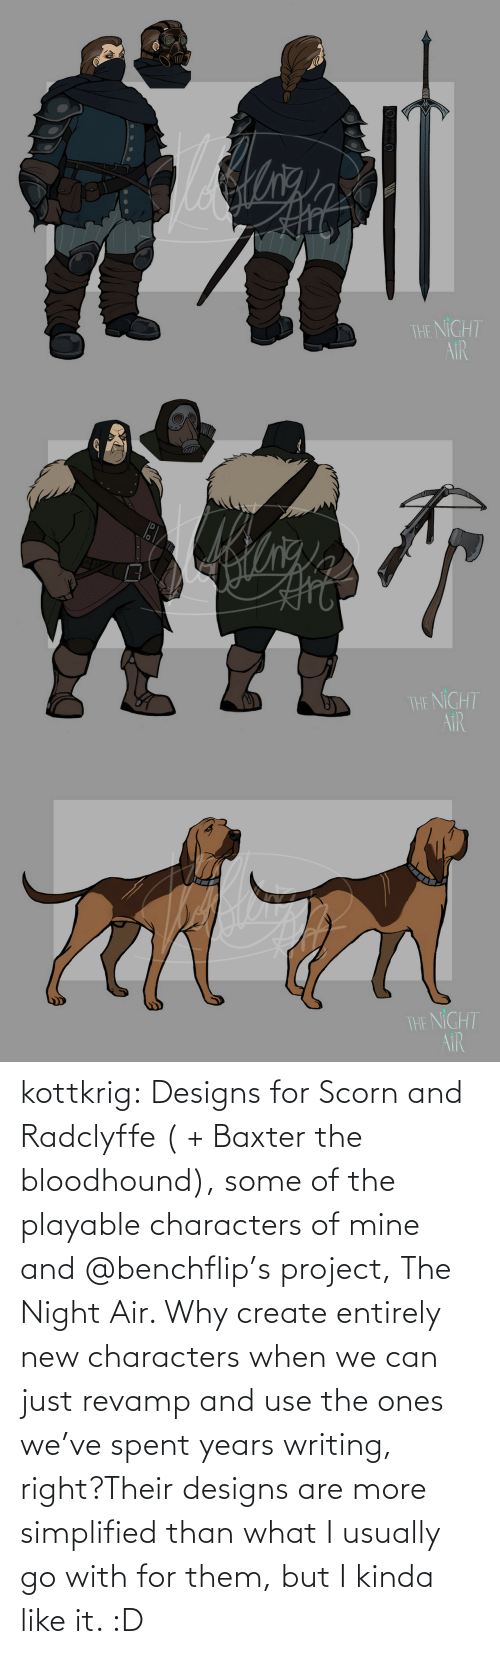 Characters: kottkrig:  Designs for Scorn and Radclyffe ( + Baxter the bloodhound), some of the playable characters of mine and @benchflip's project, The Night Air. Why create entirely new characters when we can just revamp and use the ones we've spent years writing, right?Their designs are more simplified than what I usually go with for them, but I kinda like it. :D